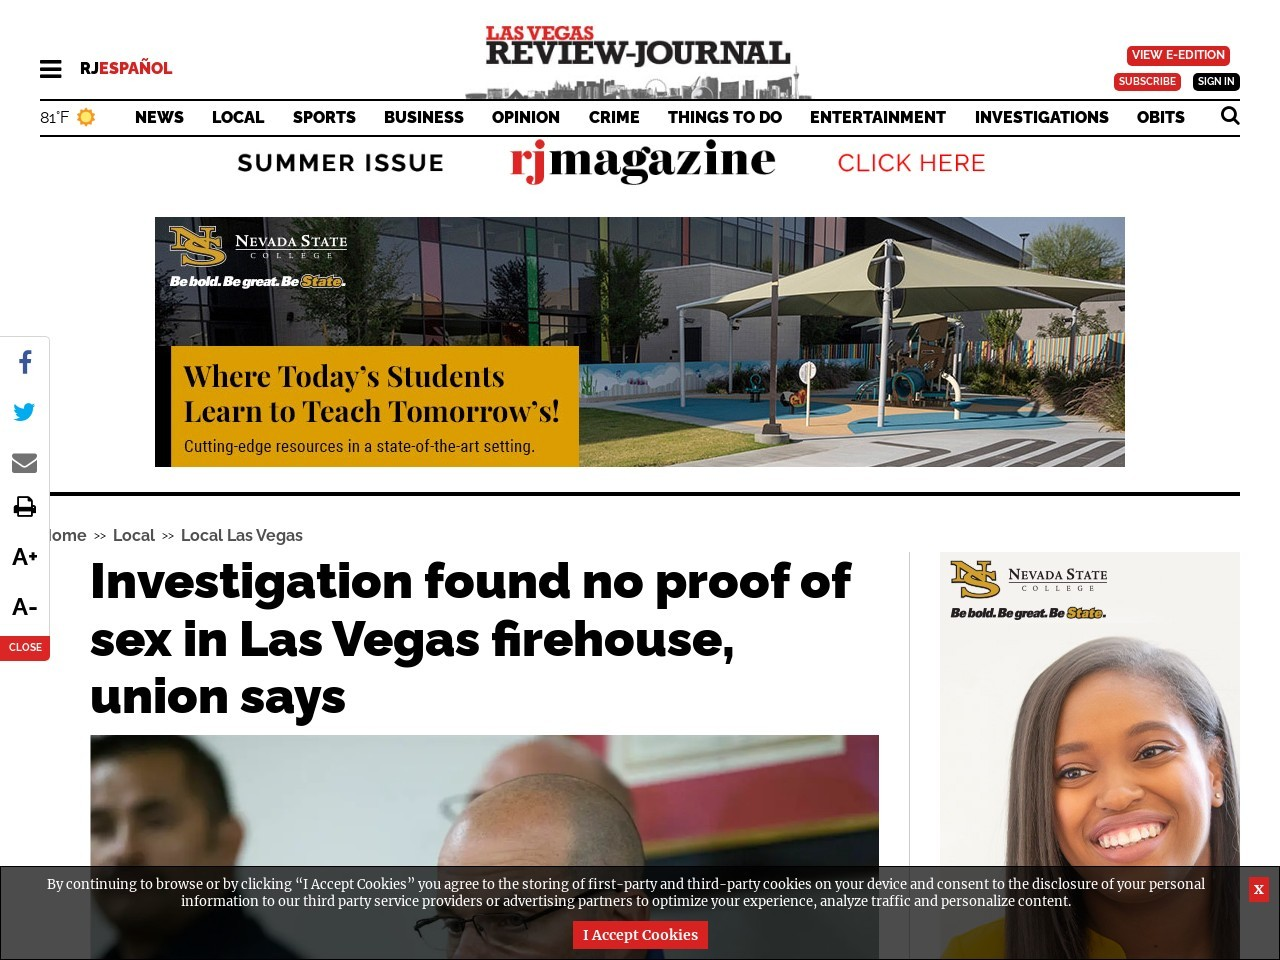 Investigation found no proof of sex in Las Vegas firehouse, union says